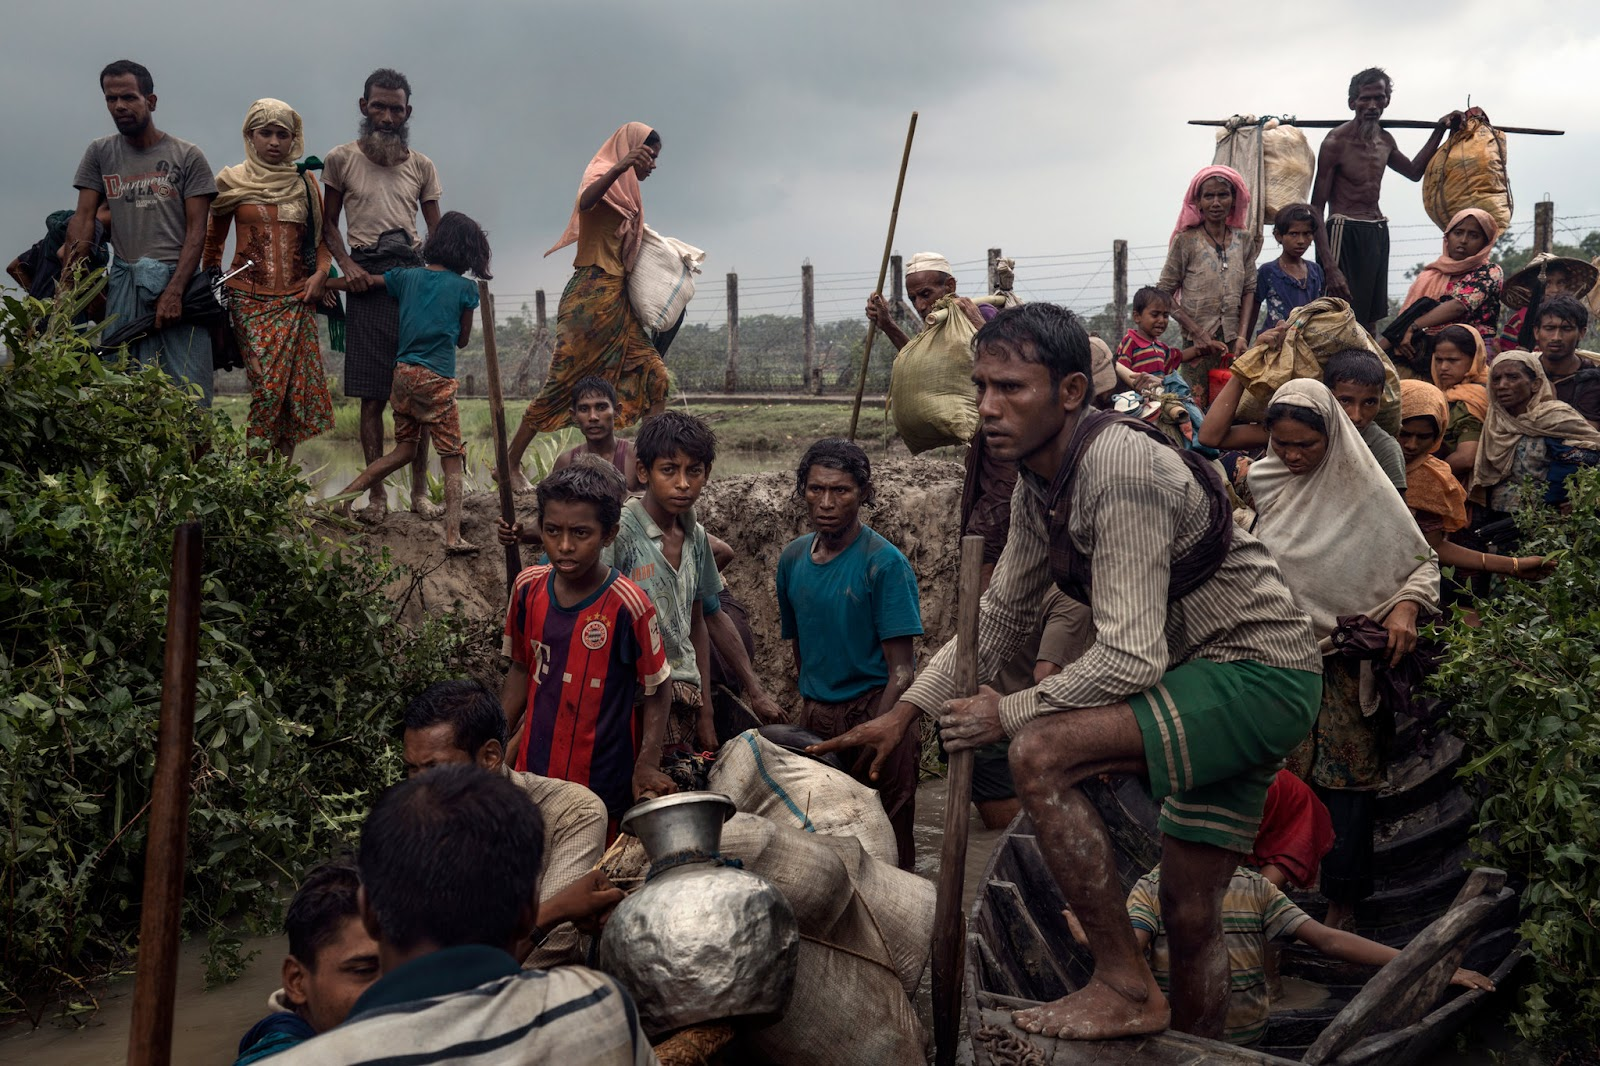 Myanmar's Military Planned Rohingya Genocide, Rights Group Says - The New  York Times